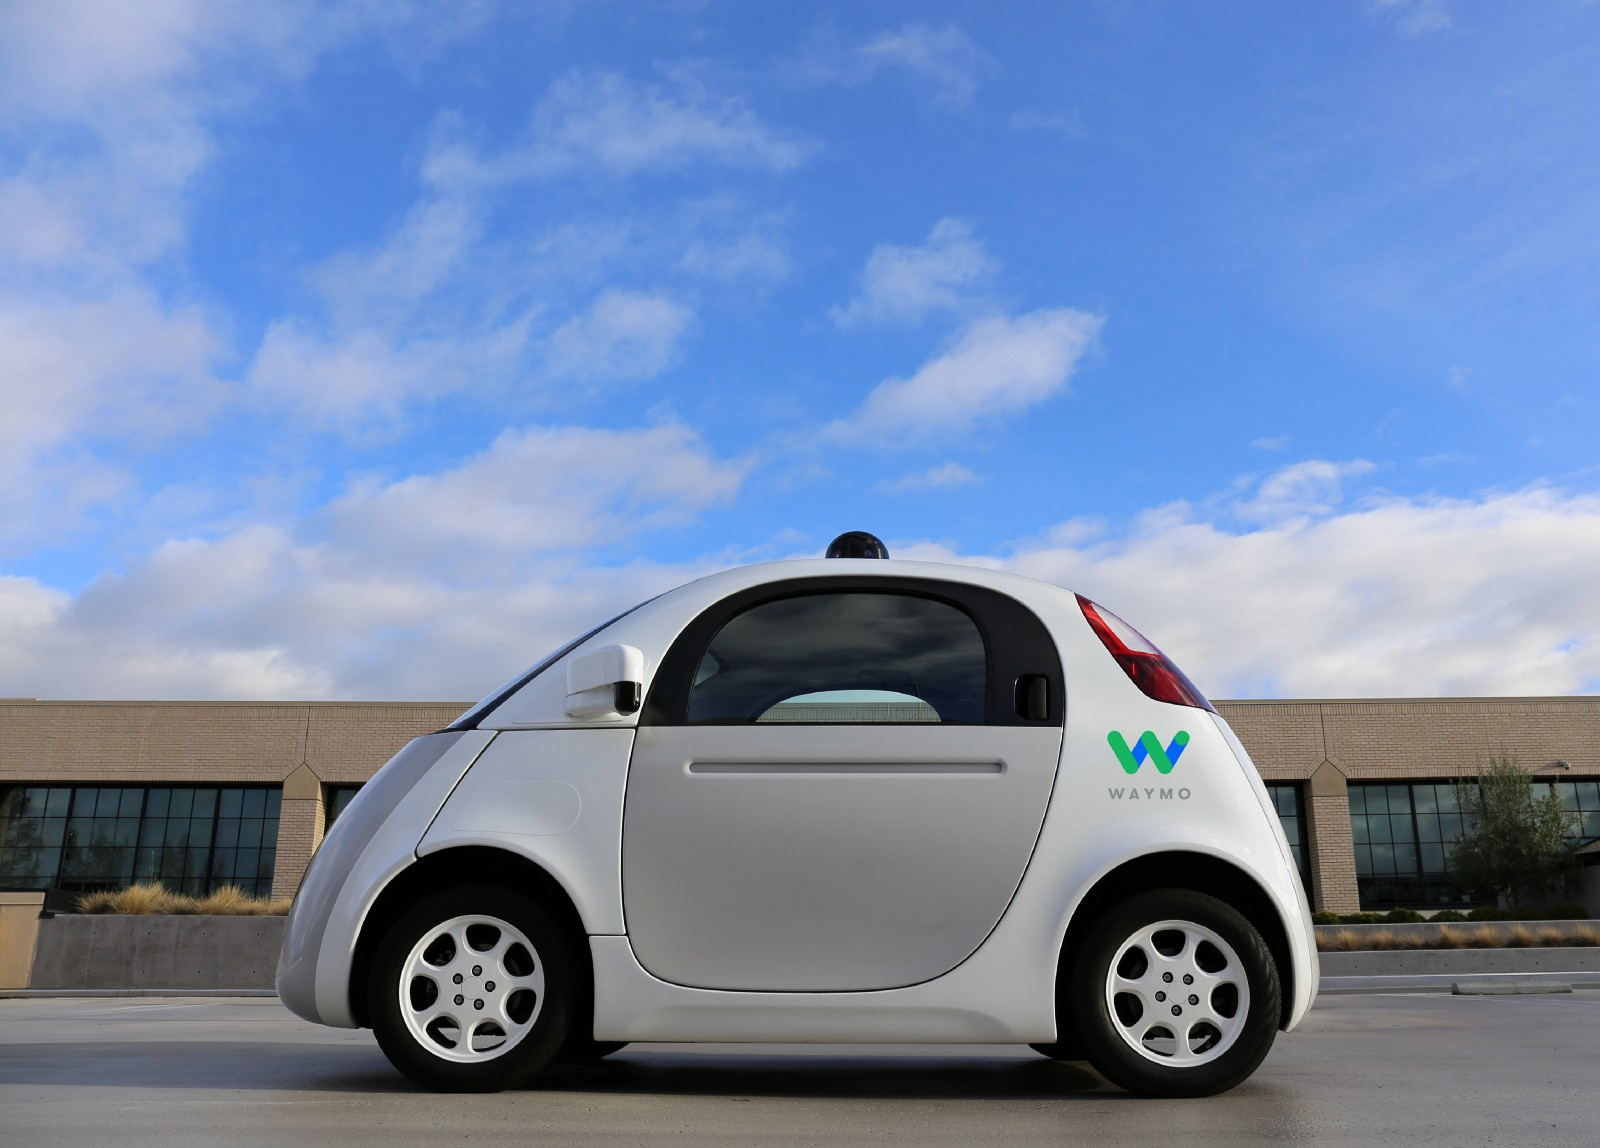 Say hello to Waymo: what\'s next for Google\'s self-driving car project